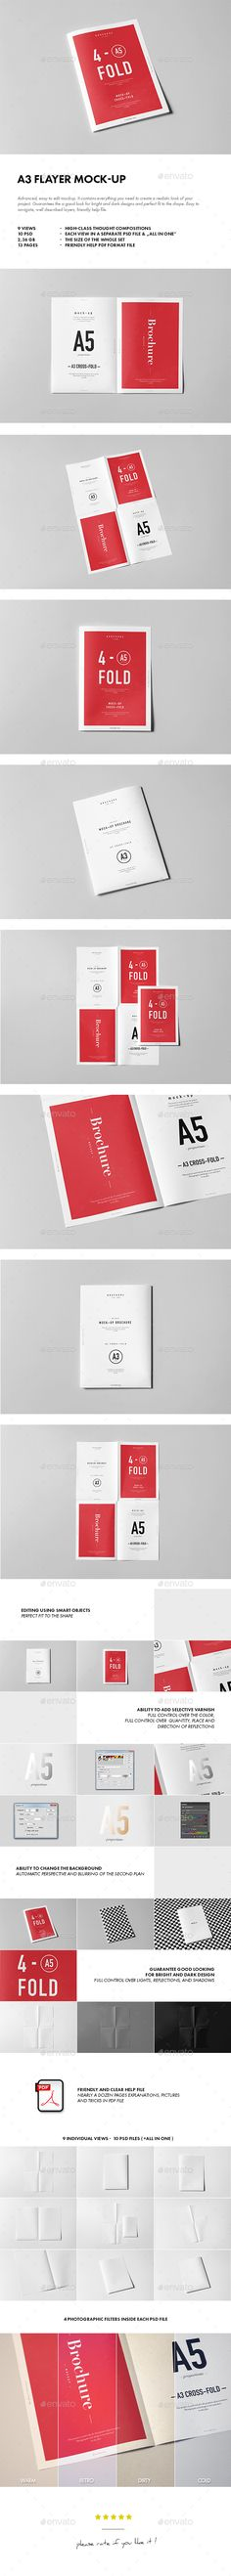 A3 Flayer Mock-up. Download here: http://graphicriver.net/item/a3-flayer-mockup/14849079?ref=ksioks